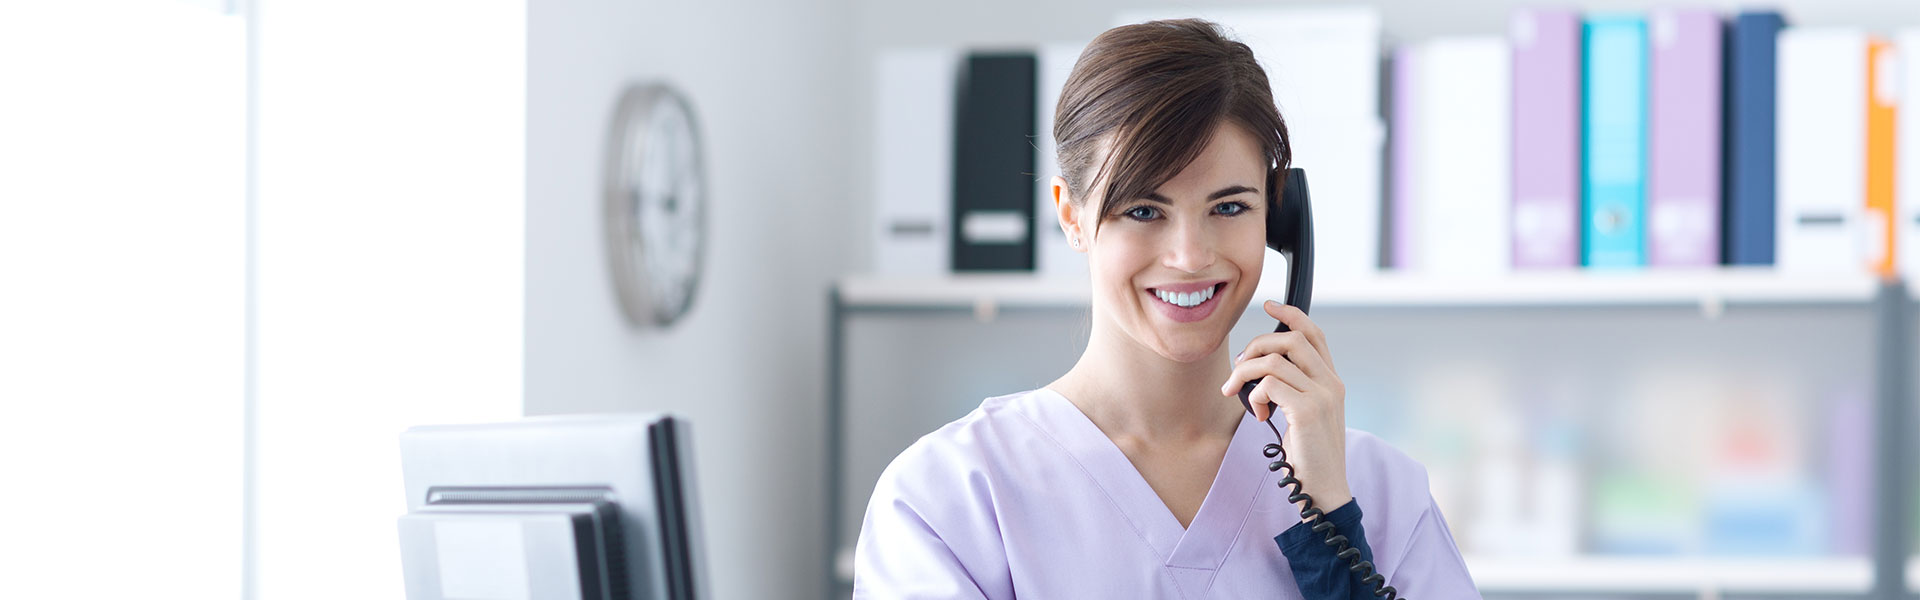 bigstock-Smiling-Receptionist-At-The-Cl-136924850